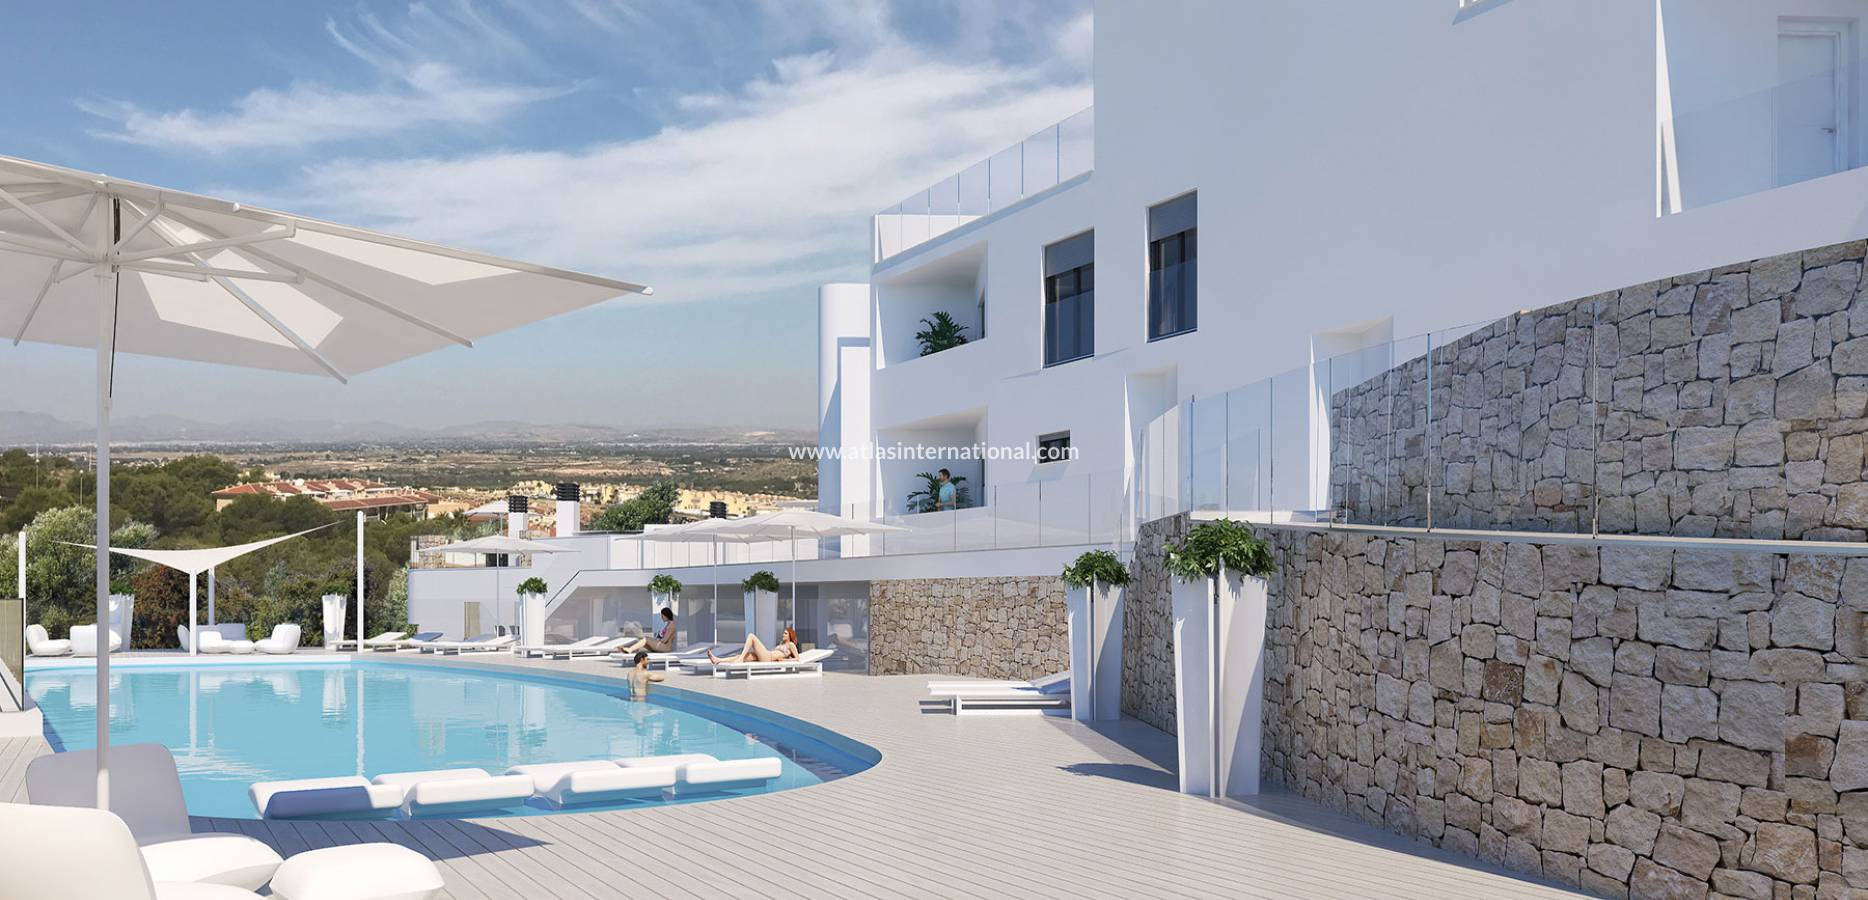 New Build - Duplex - Santa pola - Gran Alacant